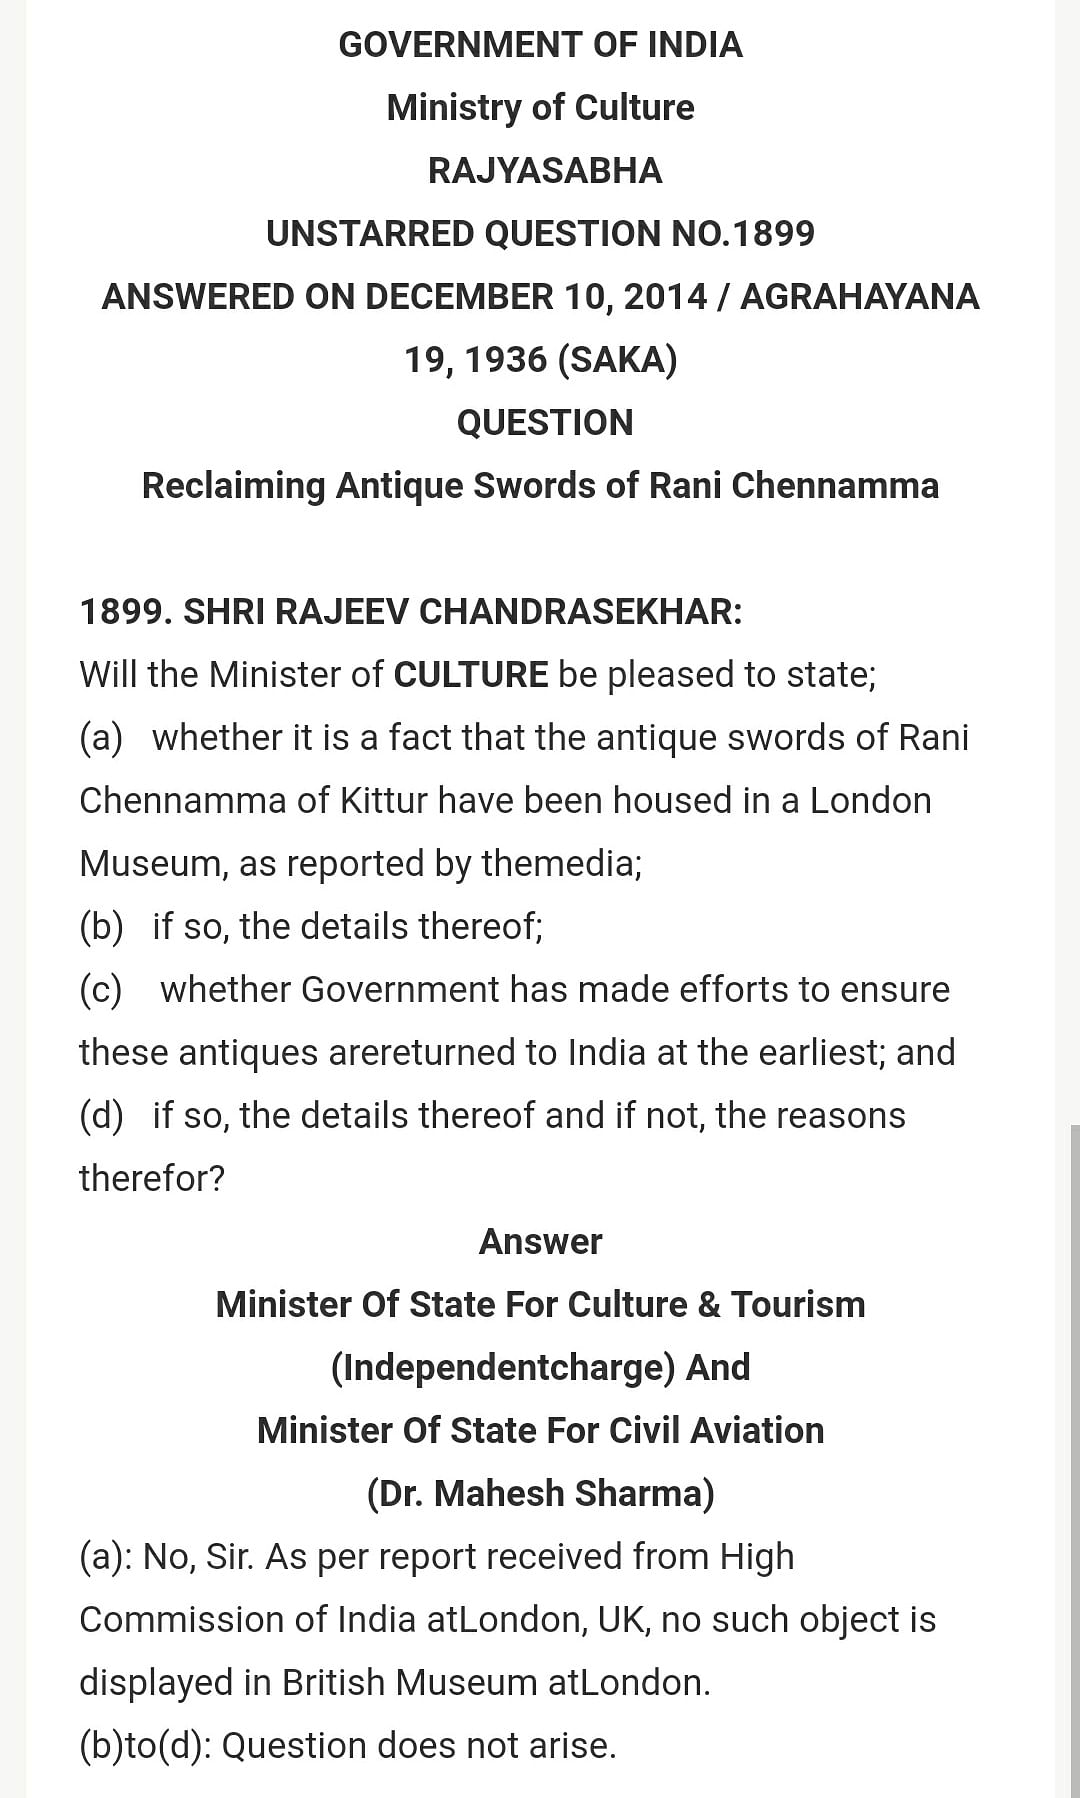 """Ministry of Culture's answer to question on Kittur Rani Chennamma's sword. <i>(Photo Courtesy: <a href=""""http://rajeev.in/?questionasked=reclaiming-antique-swords-of-rani-chennamma/"""">Rajiv Chandrashekar</a>)</i>"""